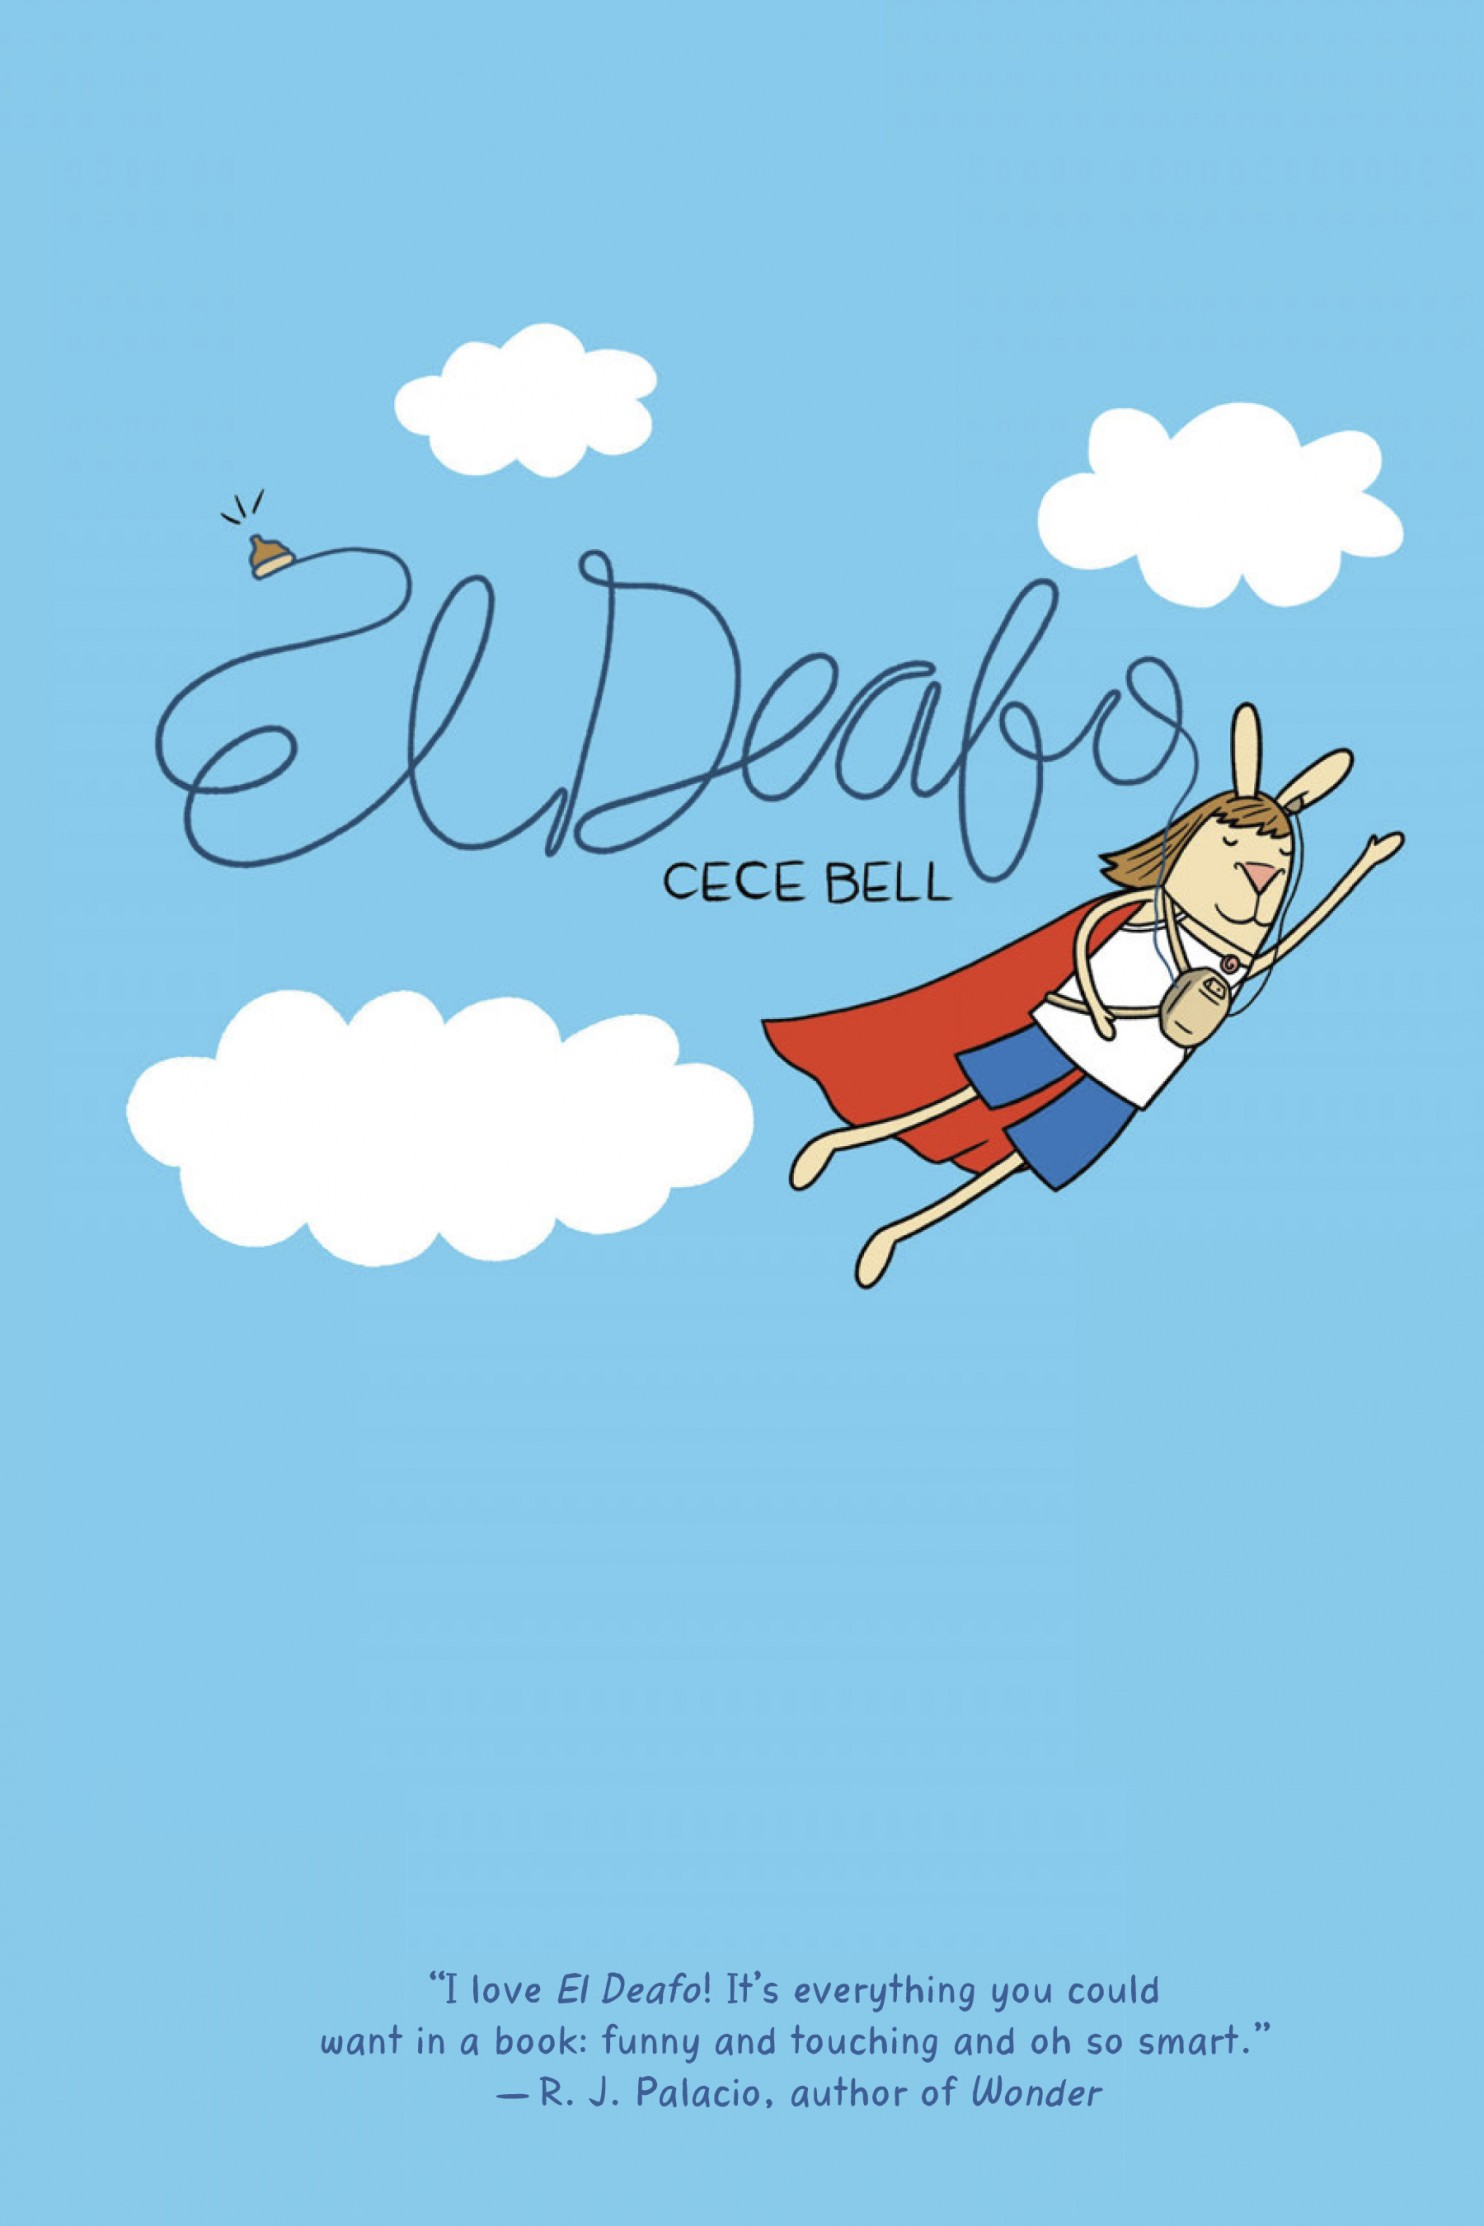 El Deafo by Cece Bell ages 8-12